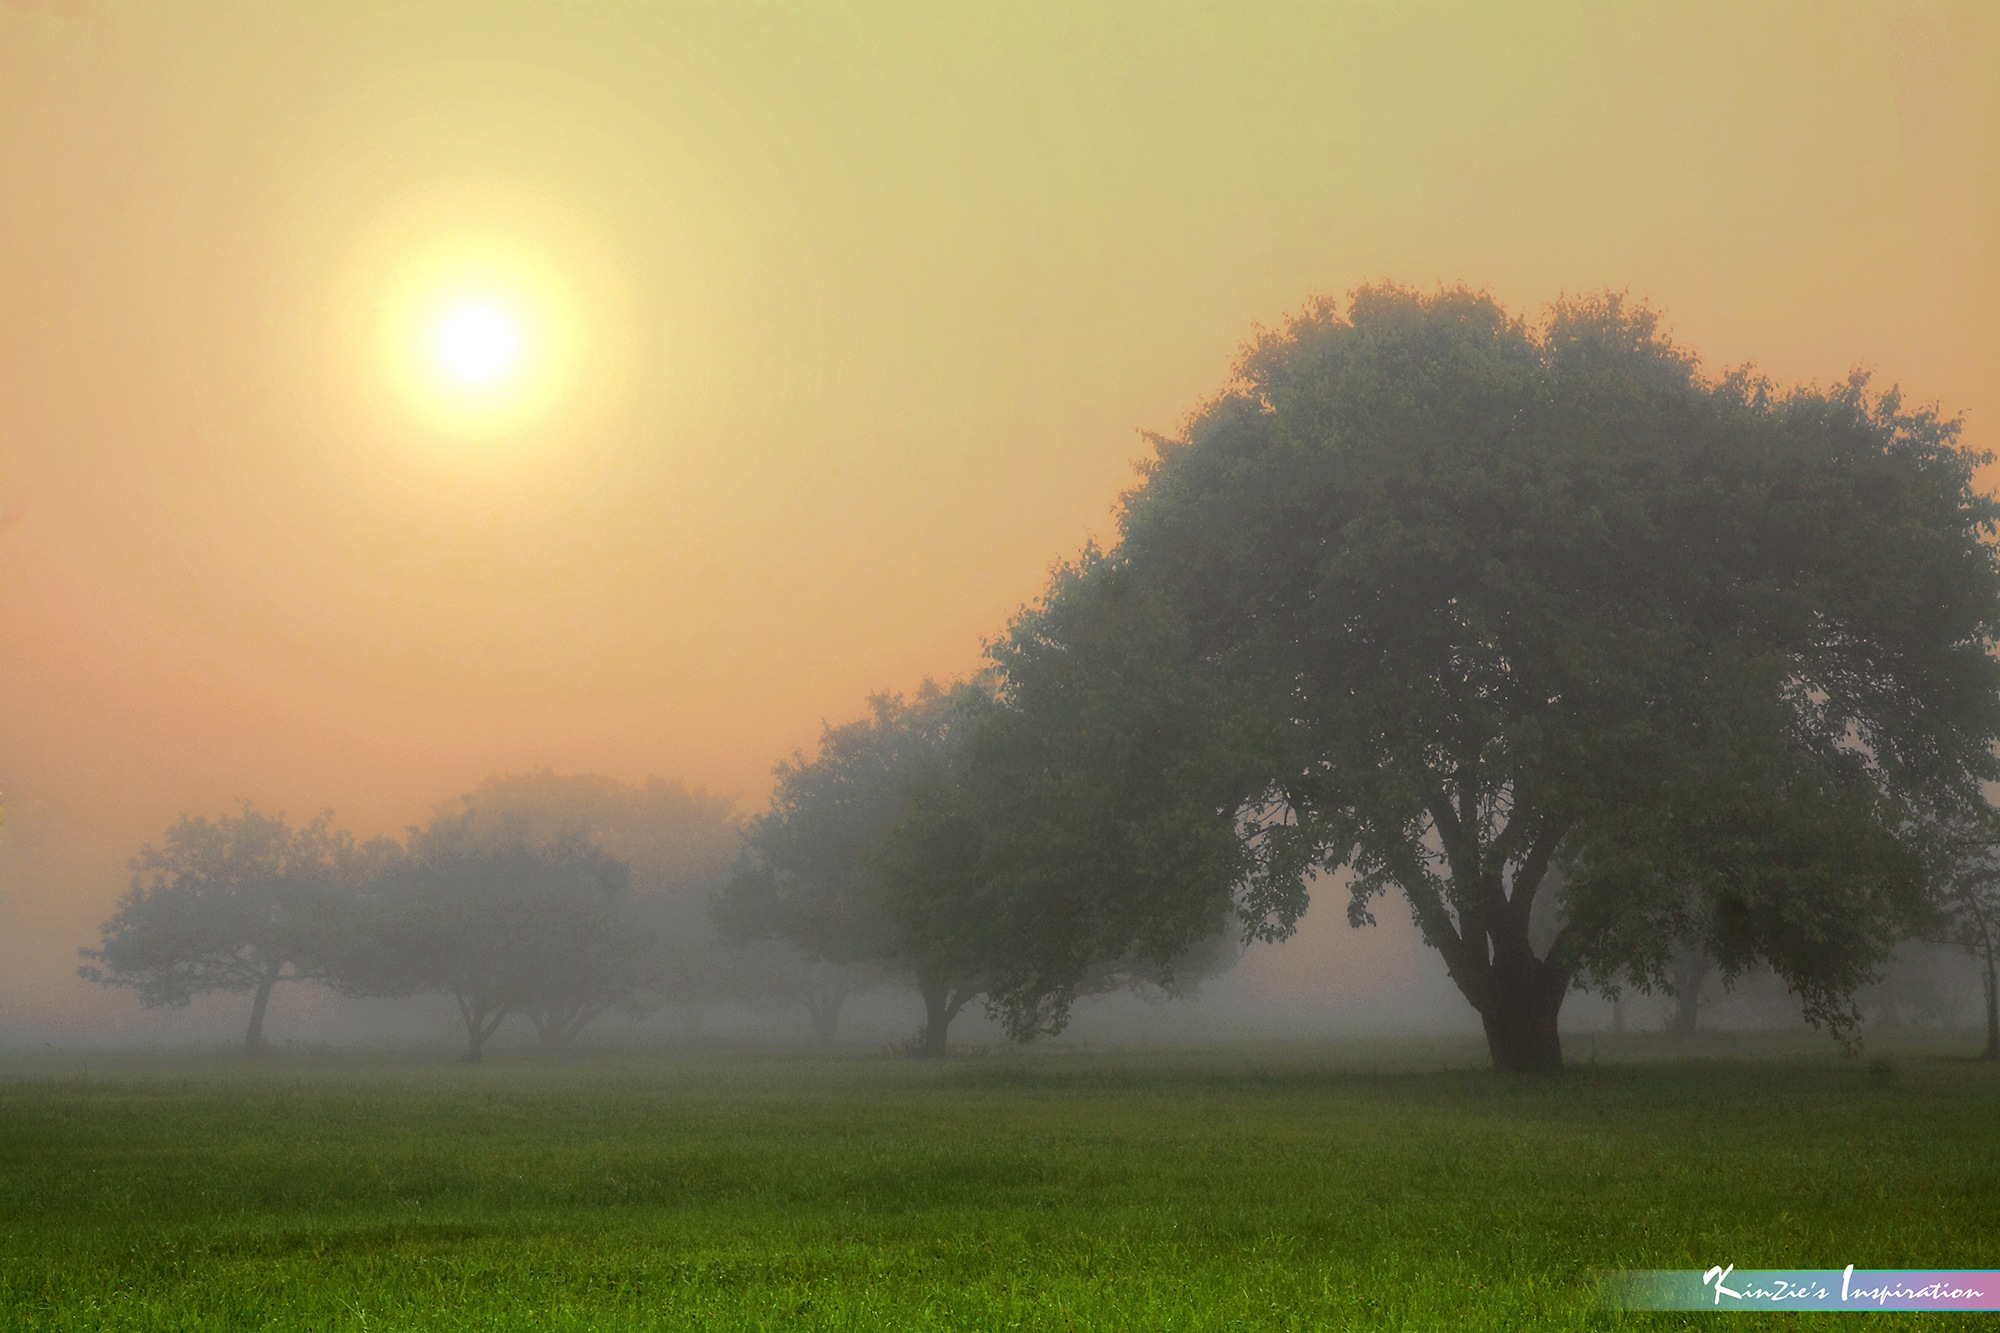 A Foggy Morning *A Beautiful Nature* by iLOVEnature's Photography Inspiration